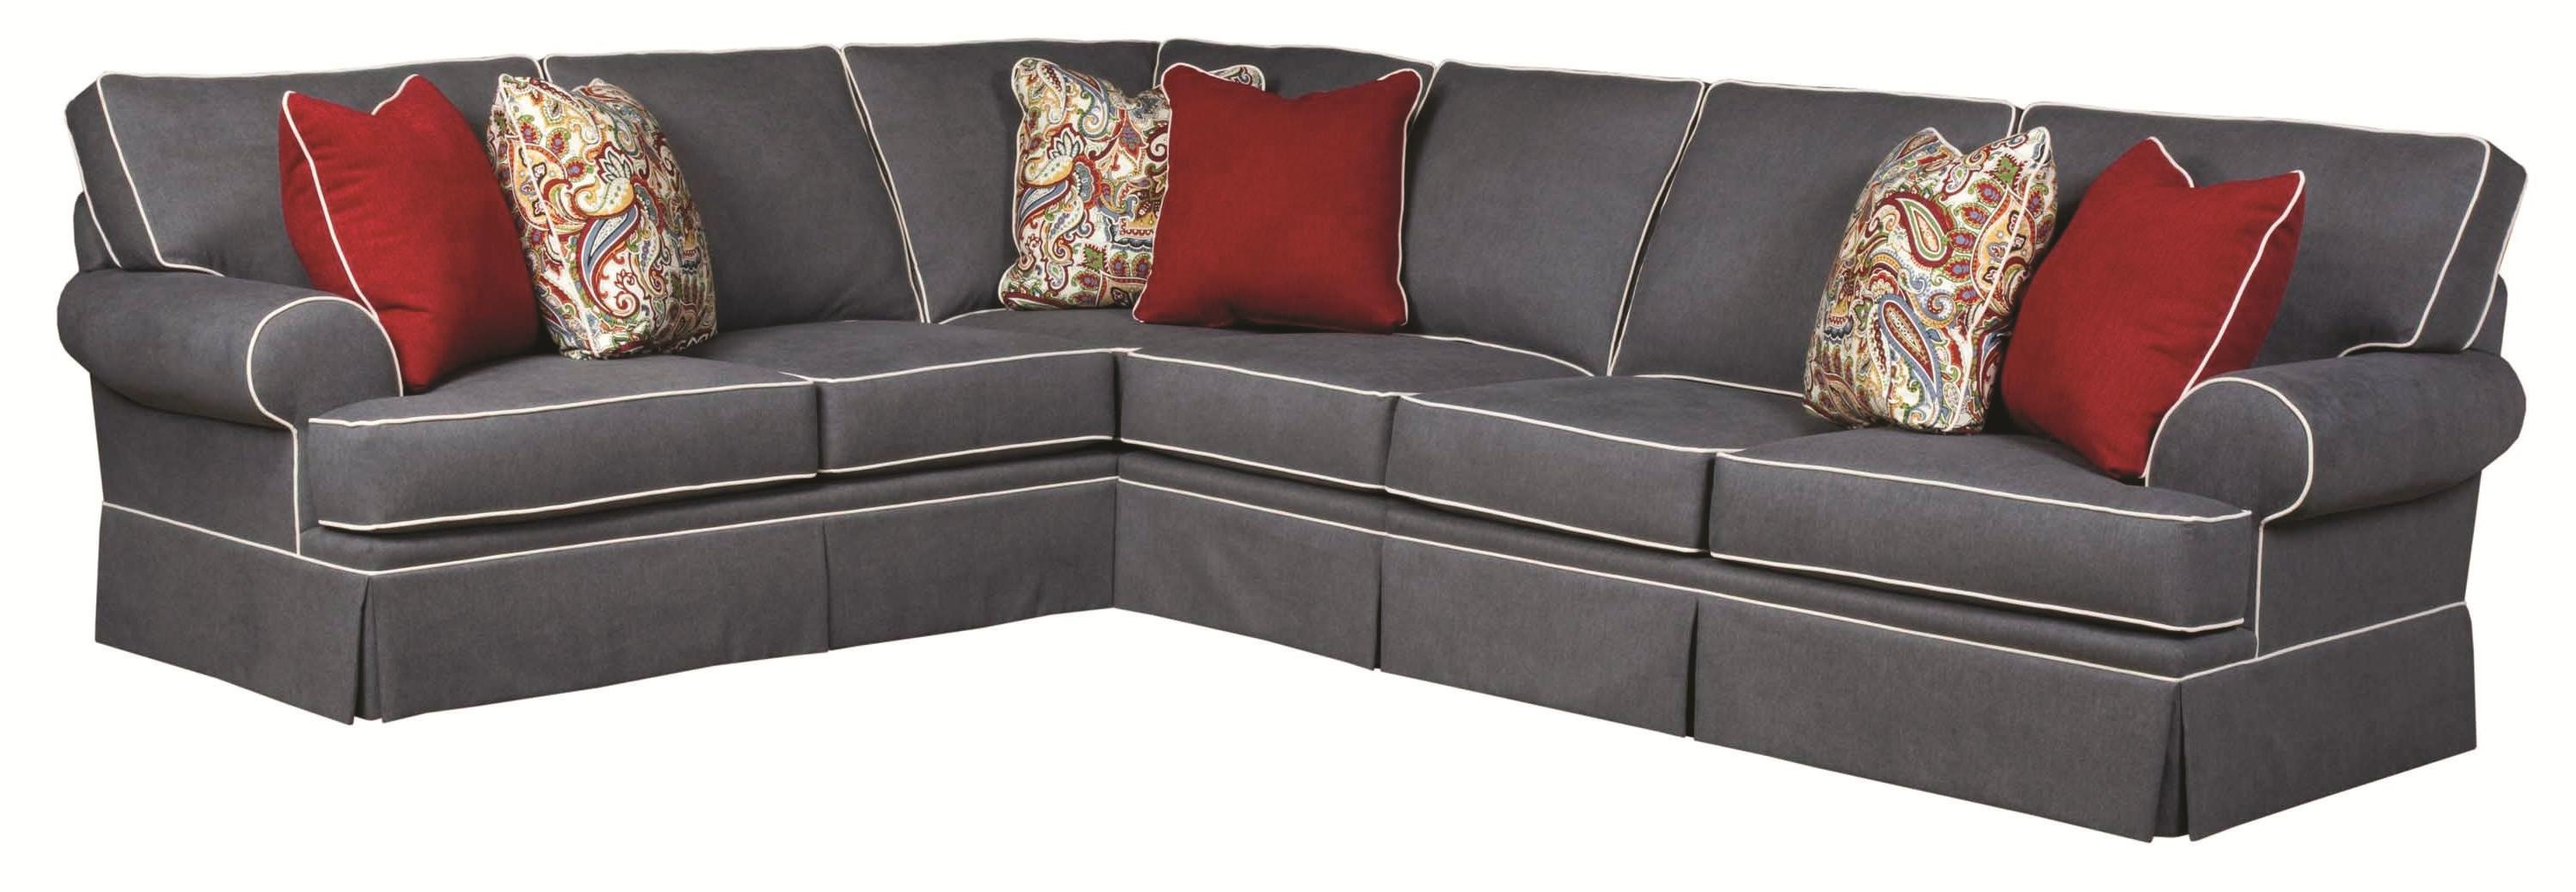 Most Current Sam Levitz Sectional Sofas Pertaining To Broyhill Furniture Emily Traditional 3 Piece Sectional Sofa With (View 8 of 15)